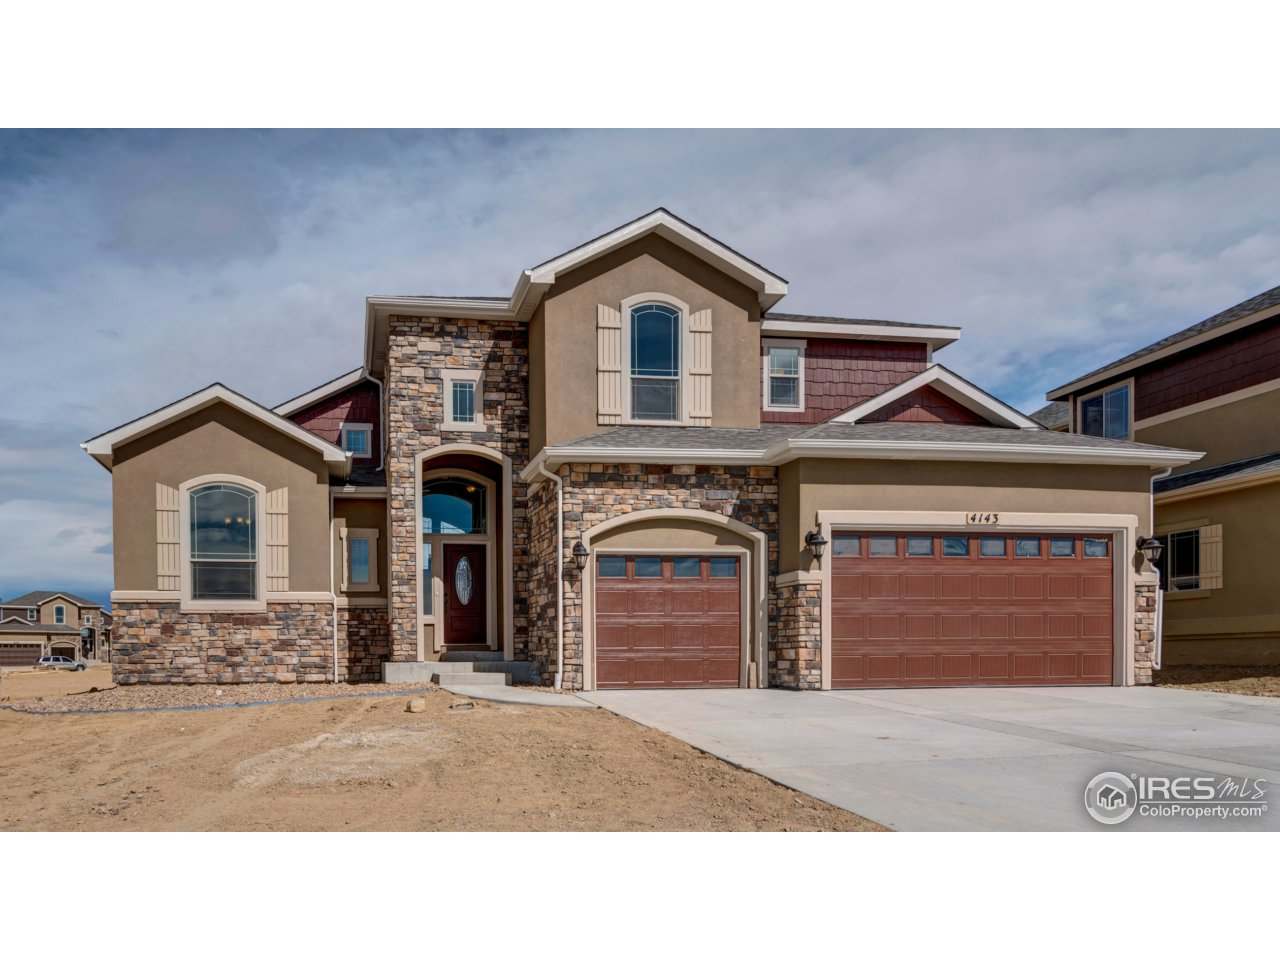 4138 Carroway Seed Dr, Johnstown, CO 80534